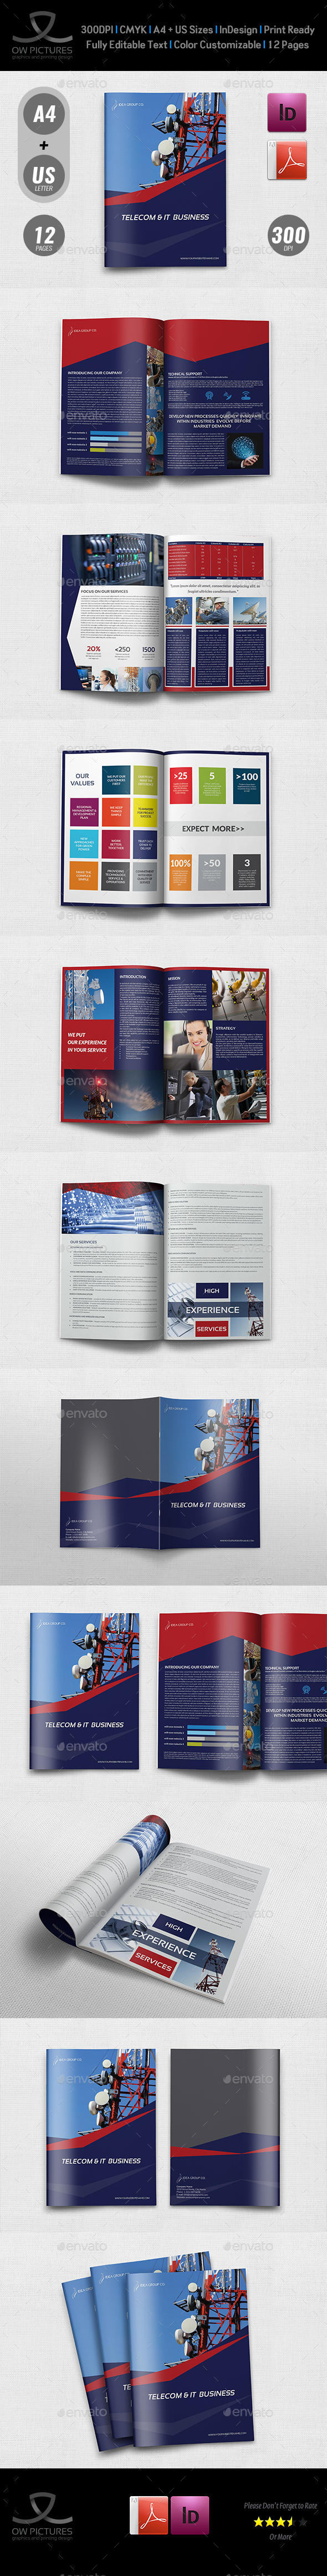 GraphicRiver Telecom Services Brochure Template 12 Pages 20657630